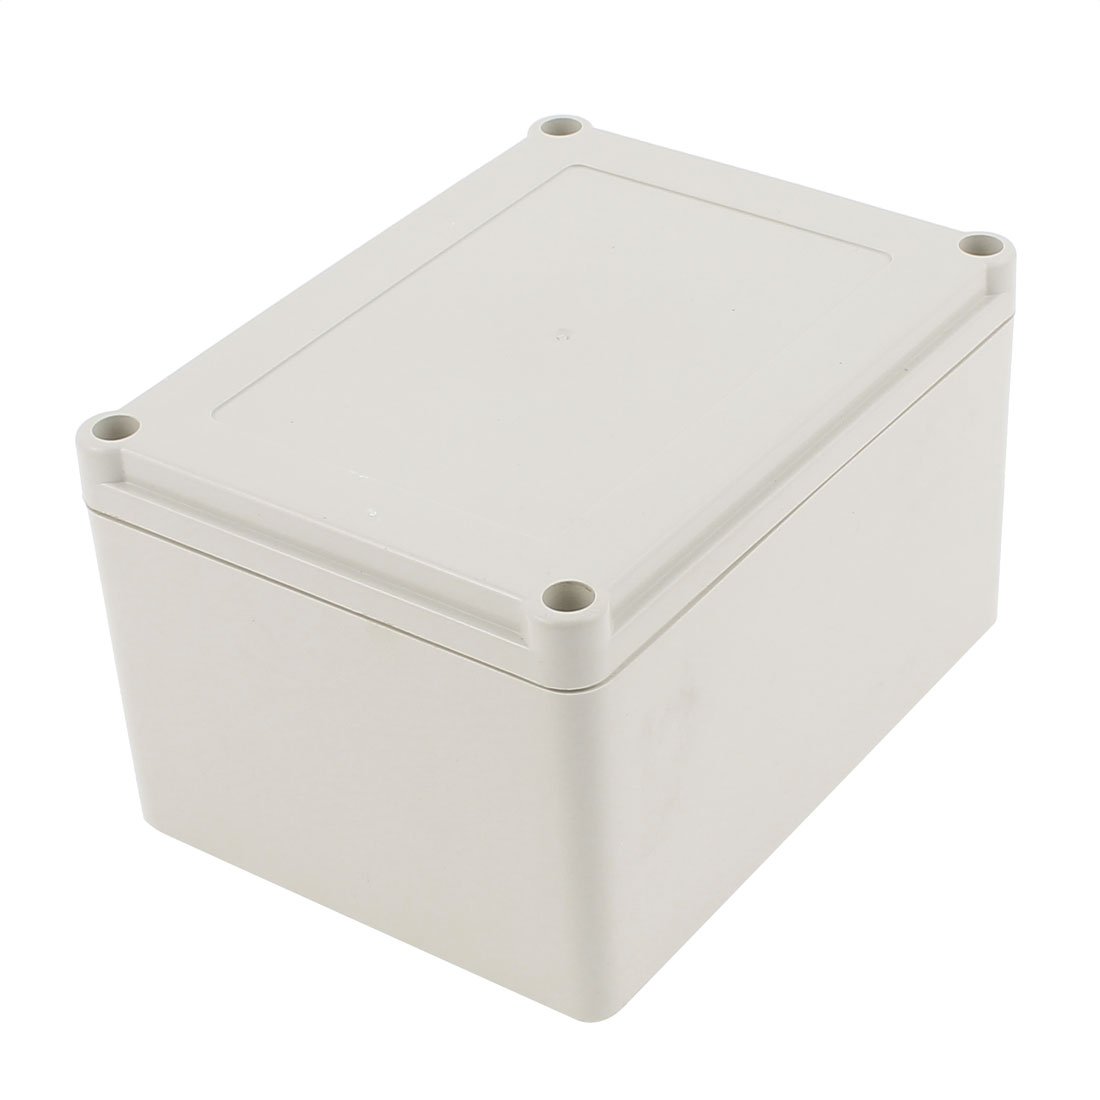 140 x 105 x 82mm Dustproof IP65 Junction Box DIY Terminal Connecting Enclosure